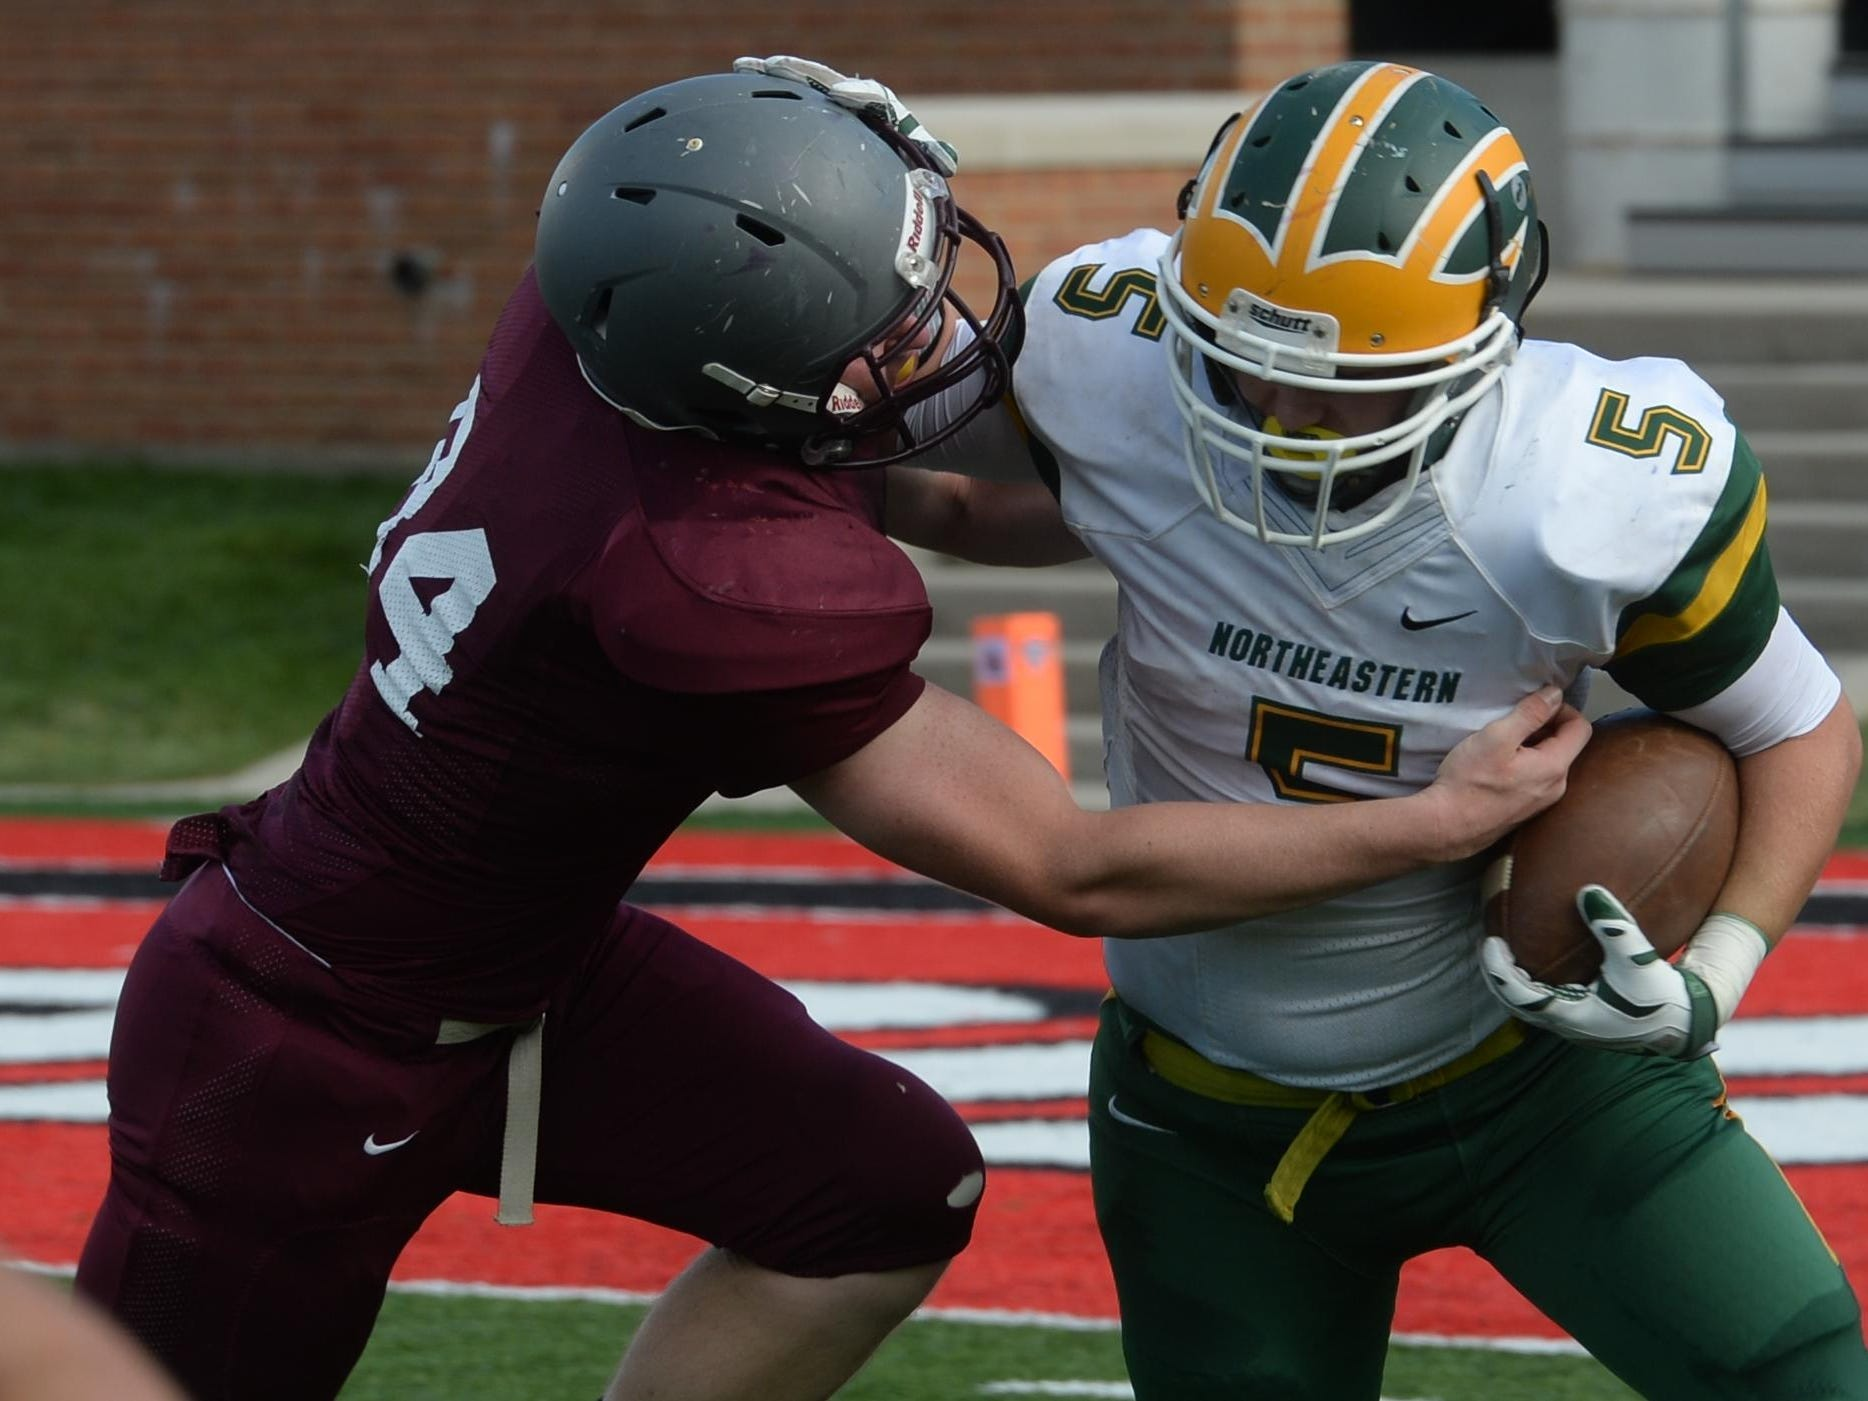 Northeastern's Connor Bray runs against Tri High last week. The Knights are 3-0 and atop the TEC standings.